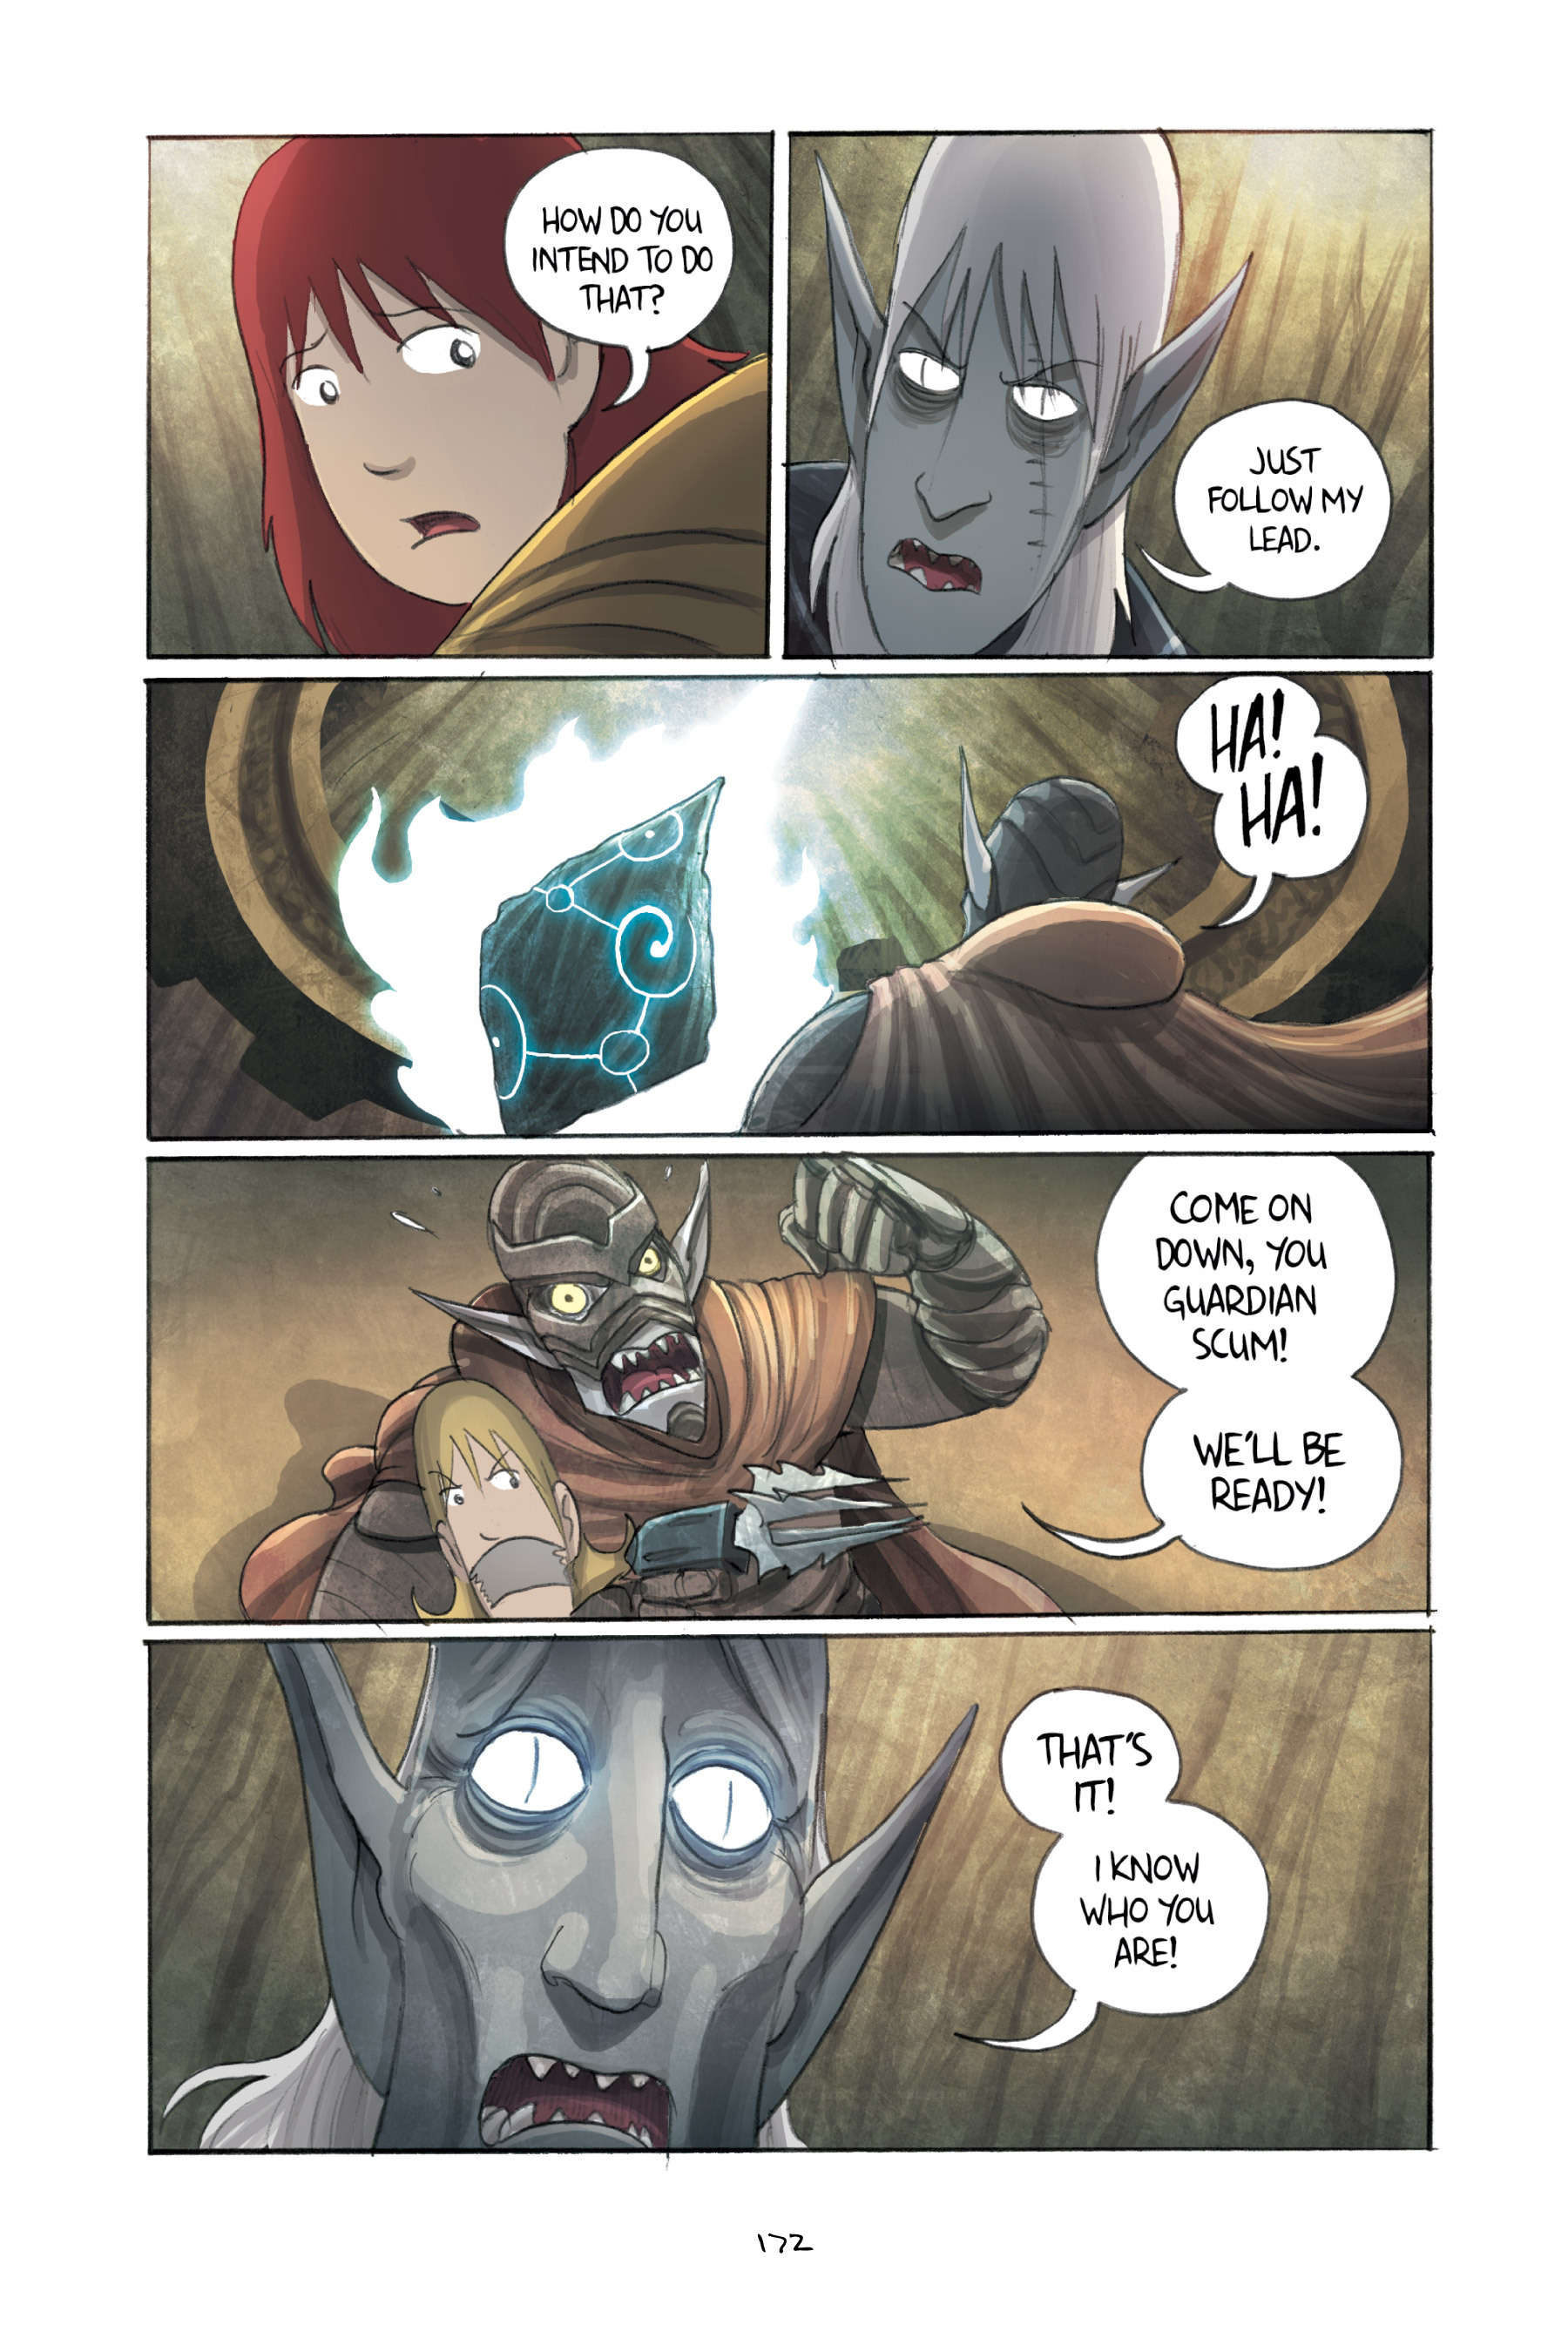 Read online Amulet comic -  Issue #3 - 168